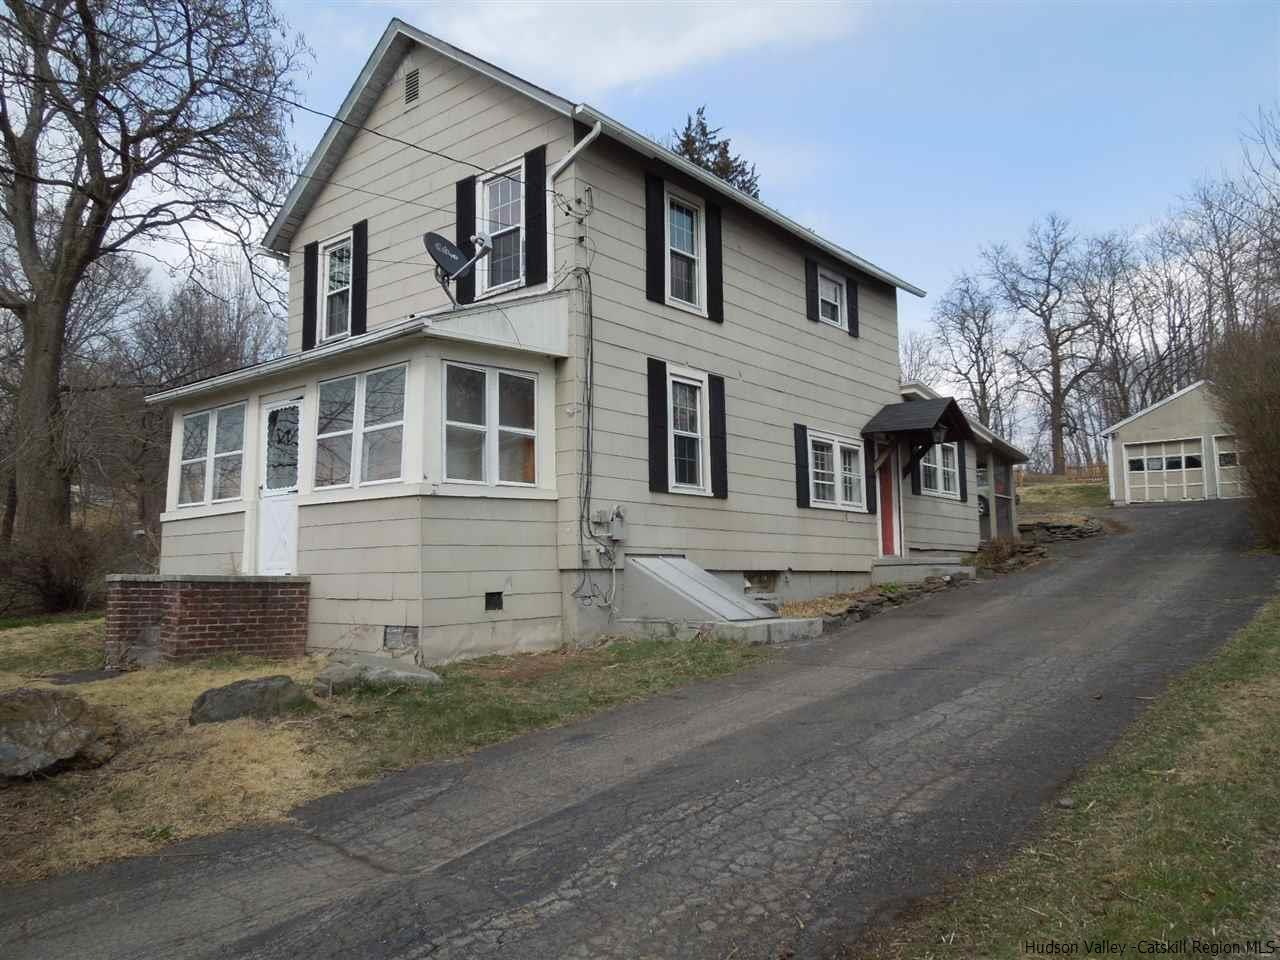 Single Family Home for Sale at 25 Old Route 9W 25 Old Route 9W Saugerties, New York 12477 United States